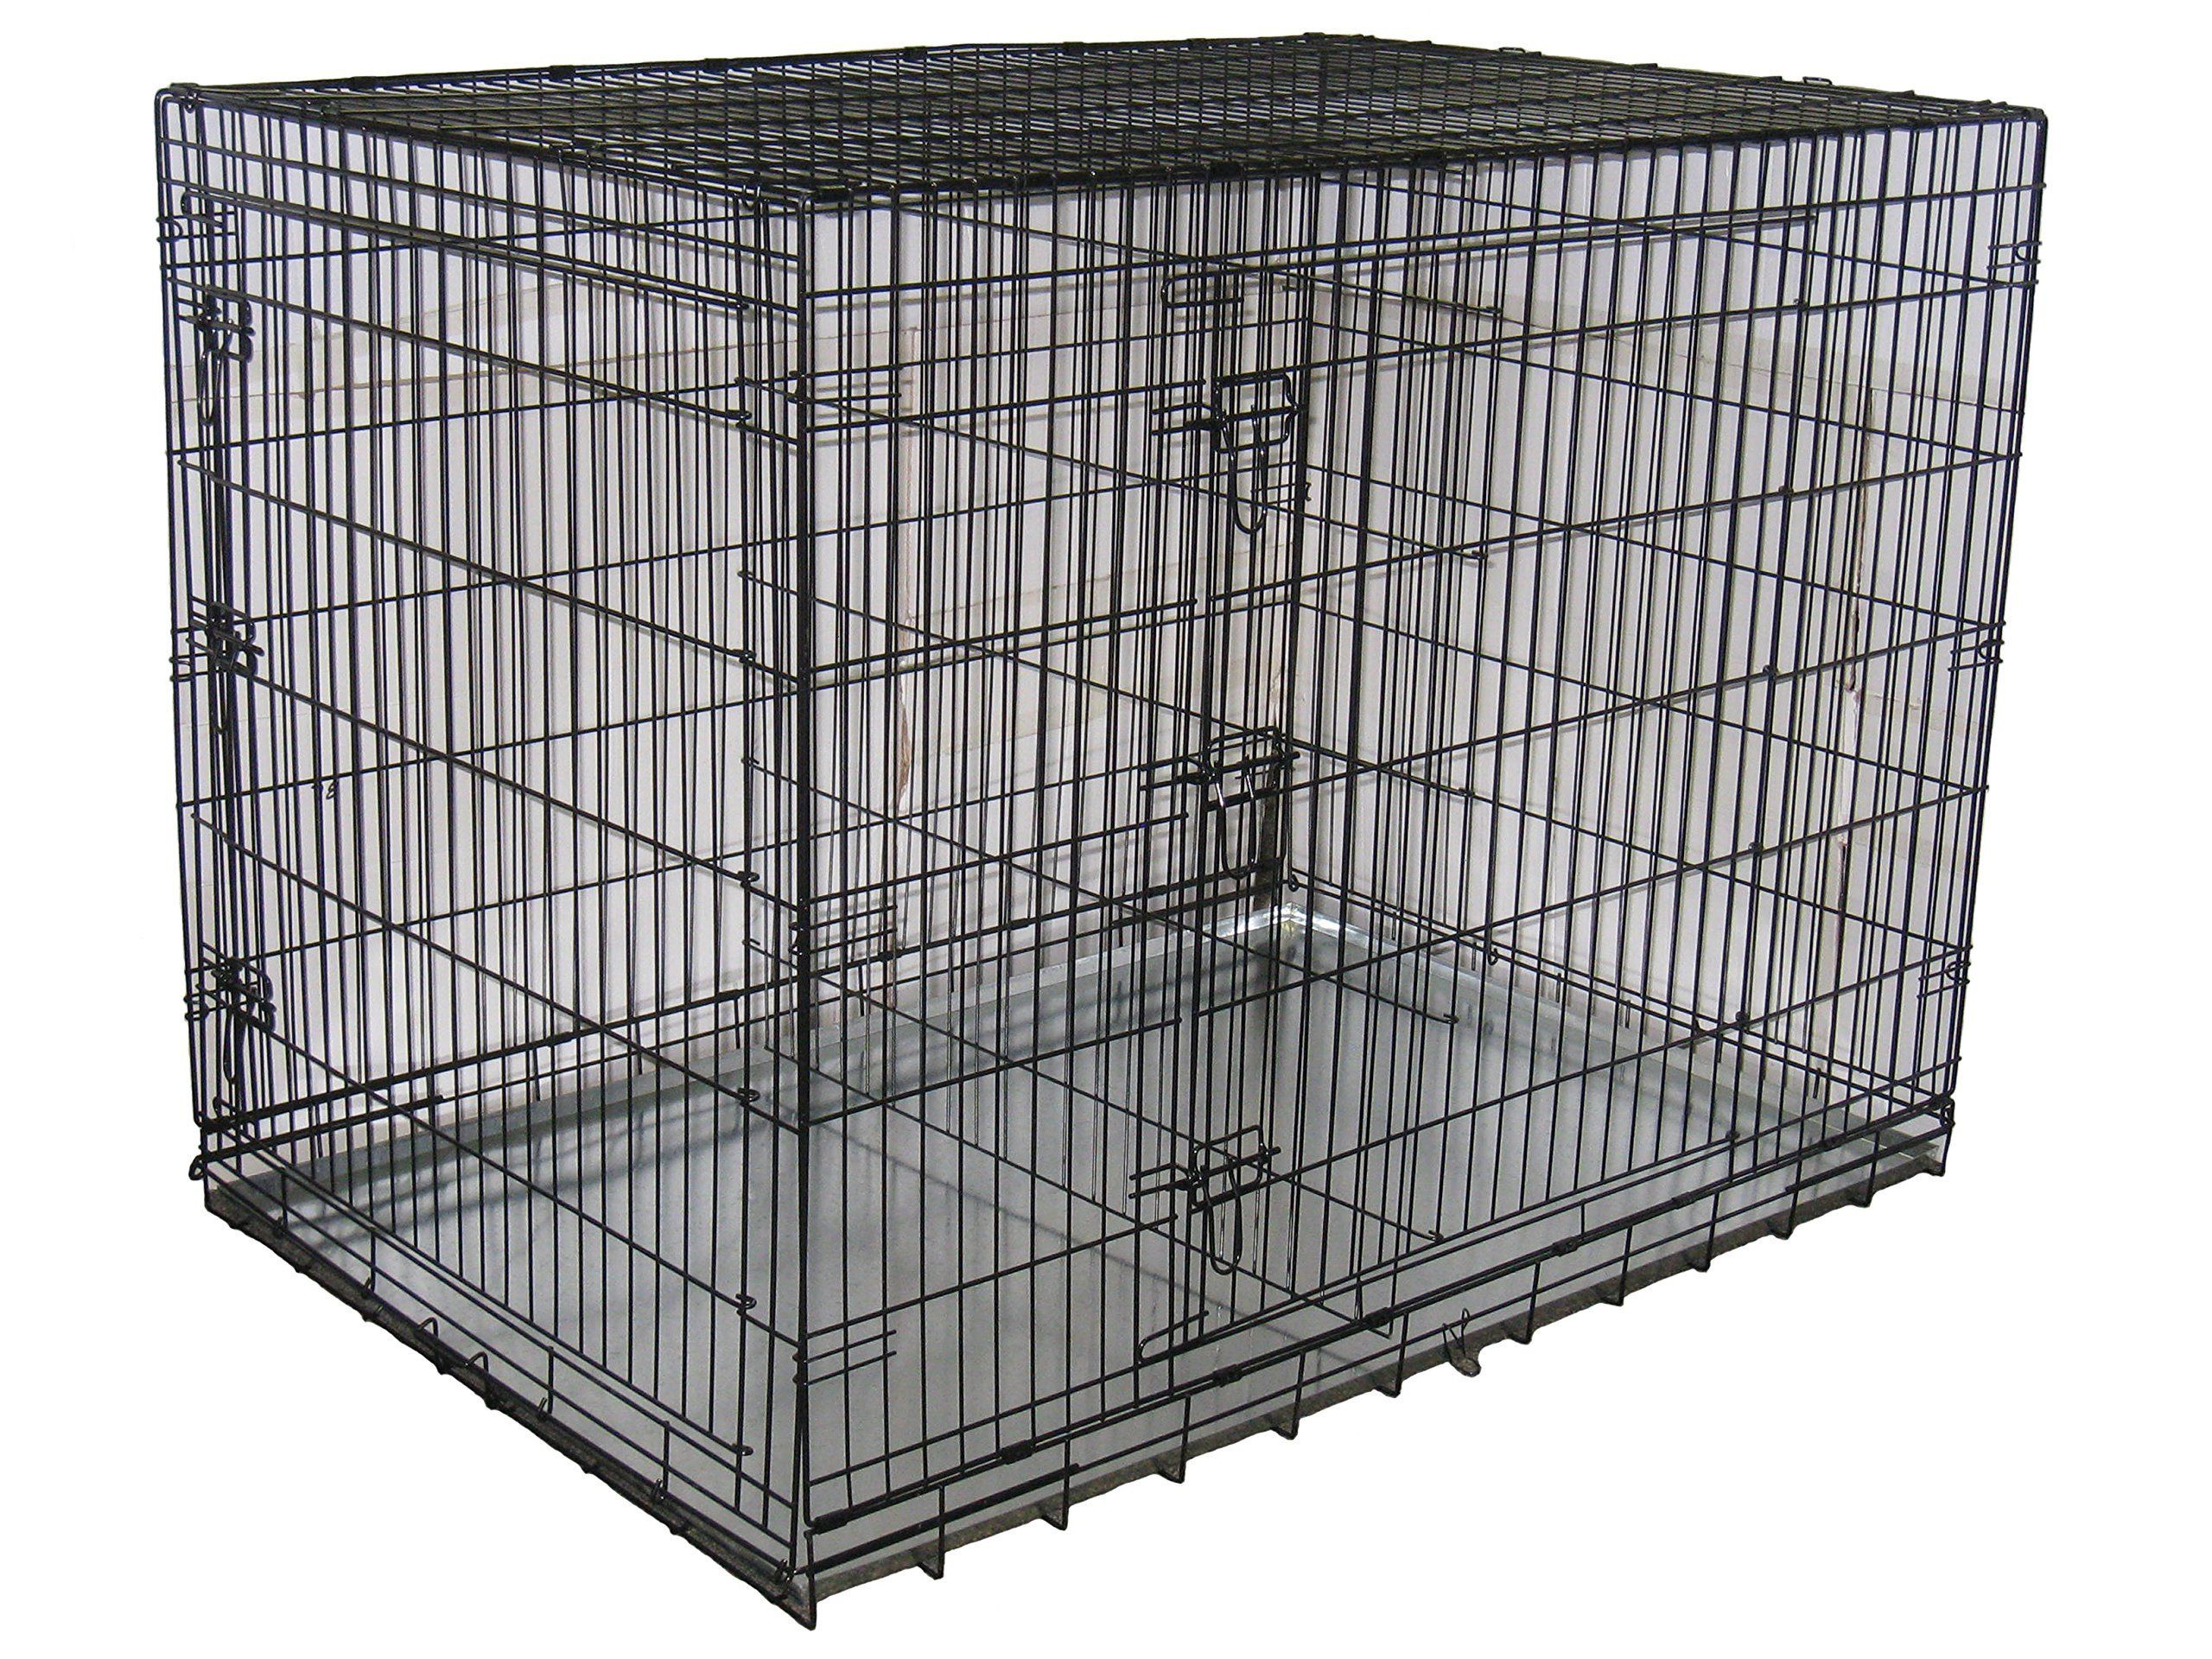 folding wire dog crate with divider xx large 54 l x 37 w x 39 h